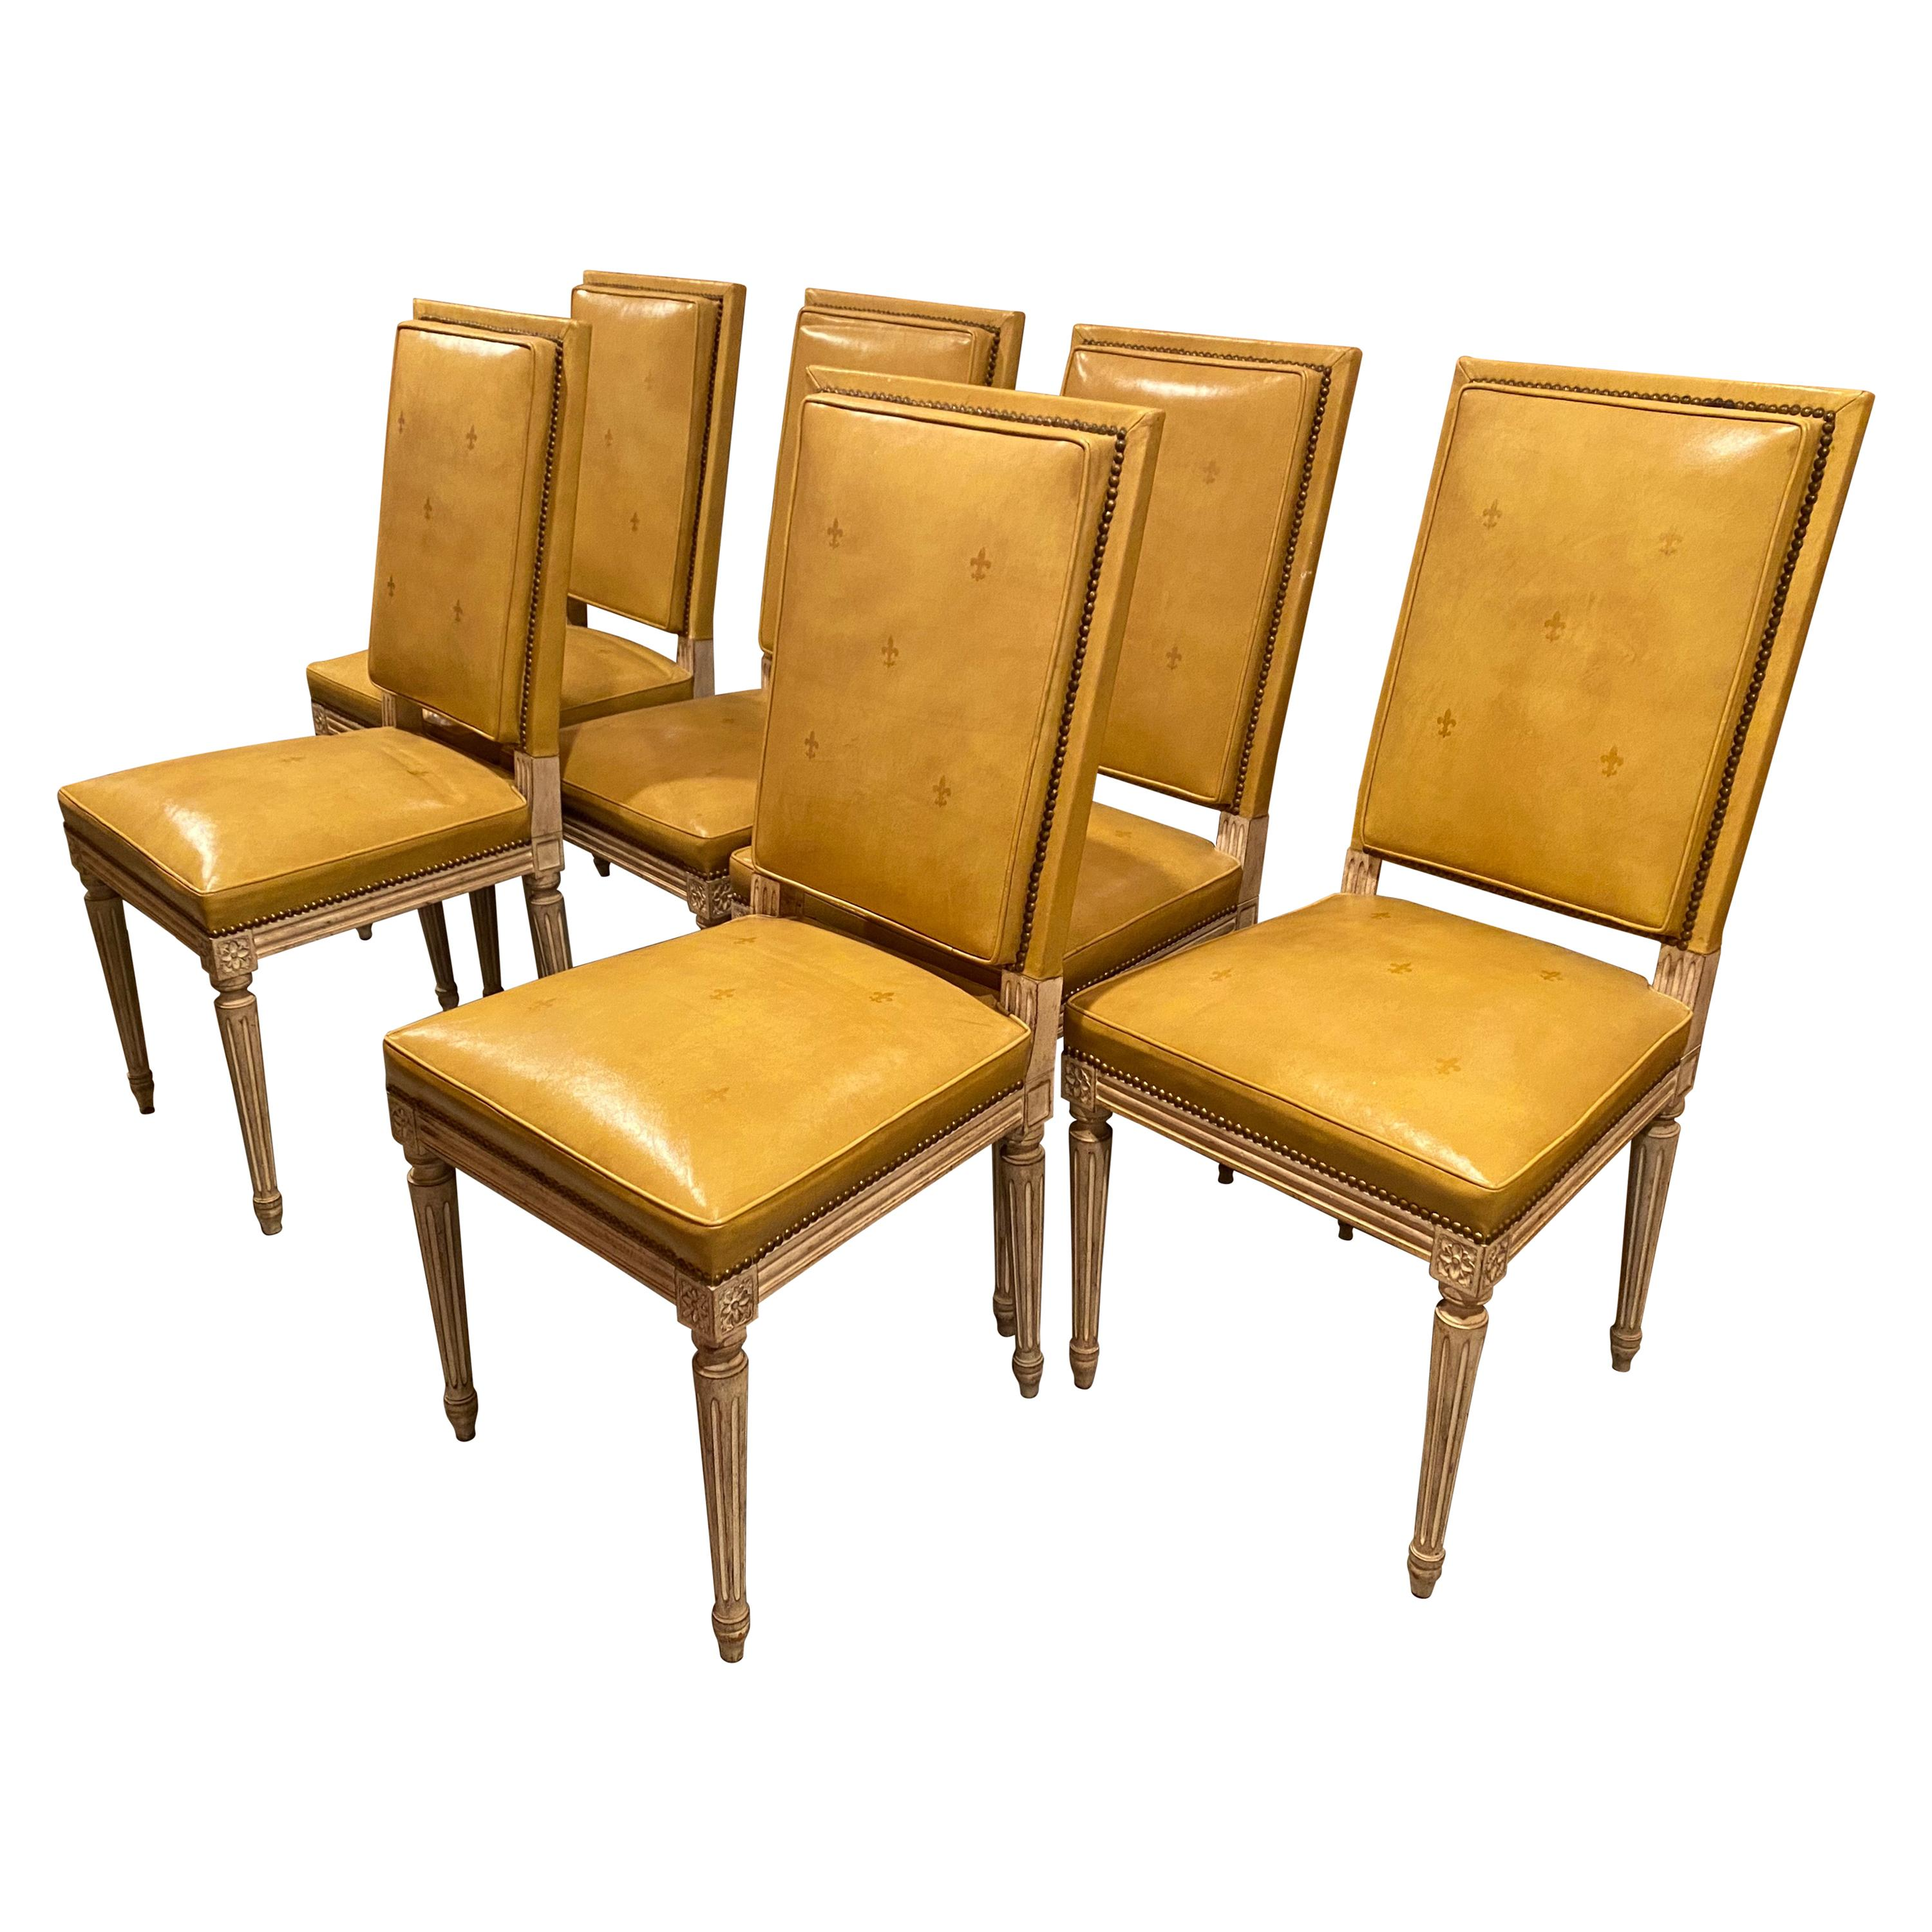 Set of Six Louis XVI Style Yellow Leather Upholstered Dining Chairs, 1920s